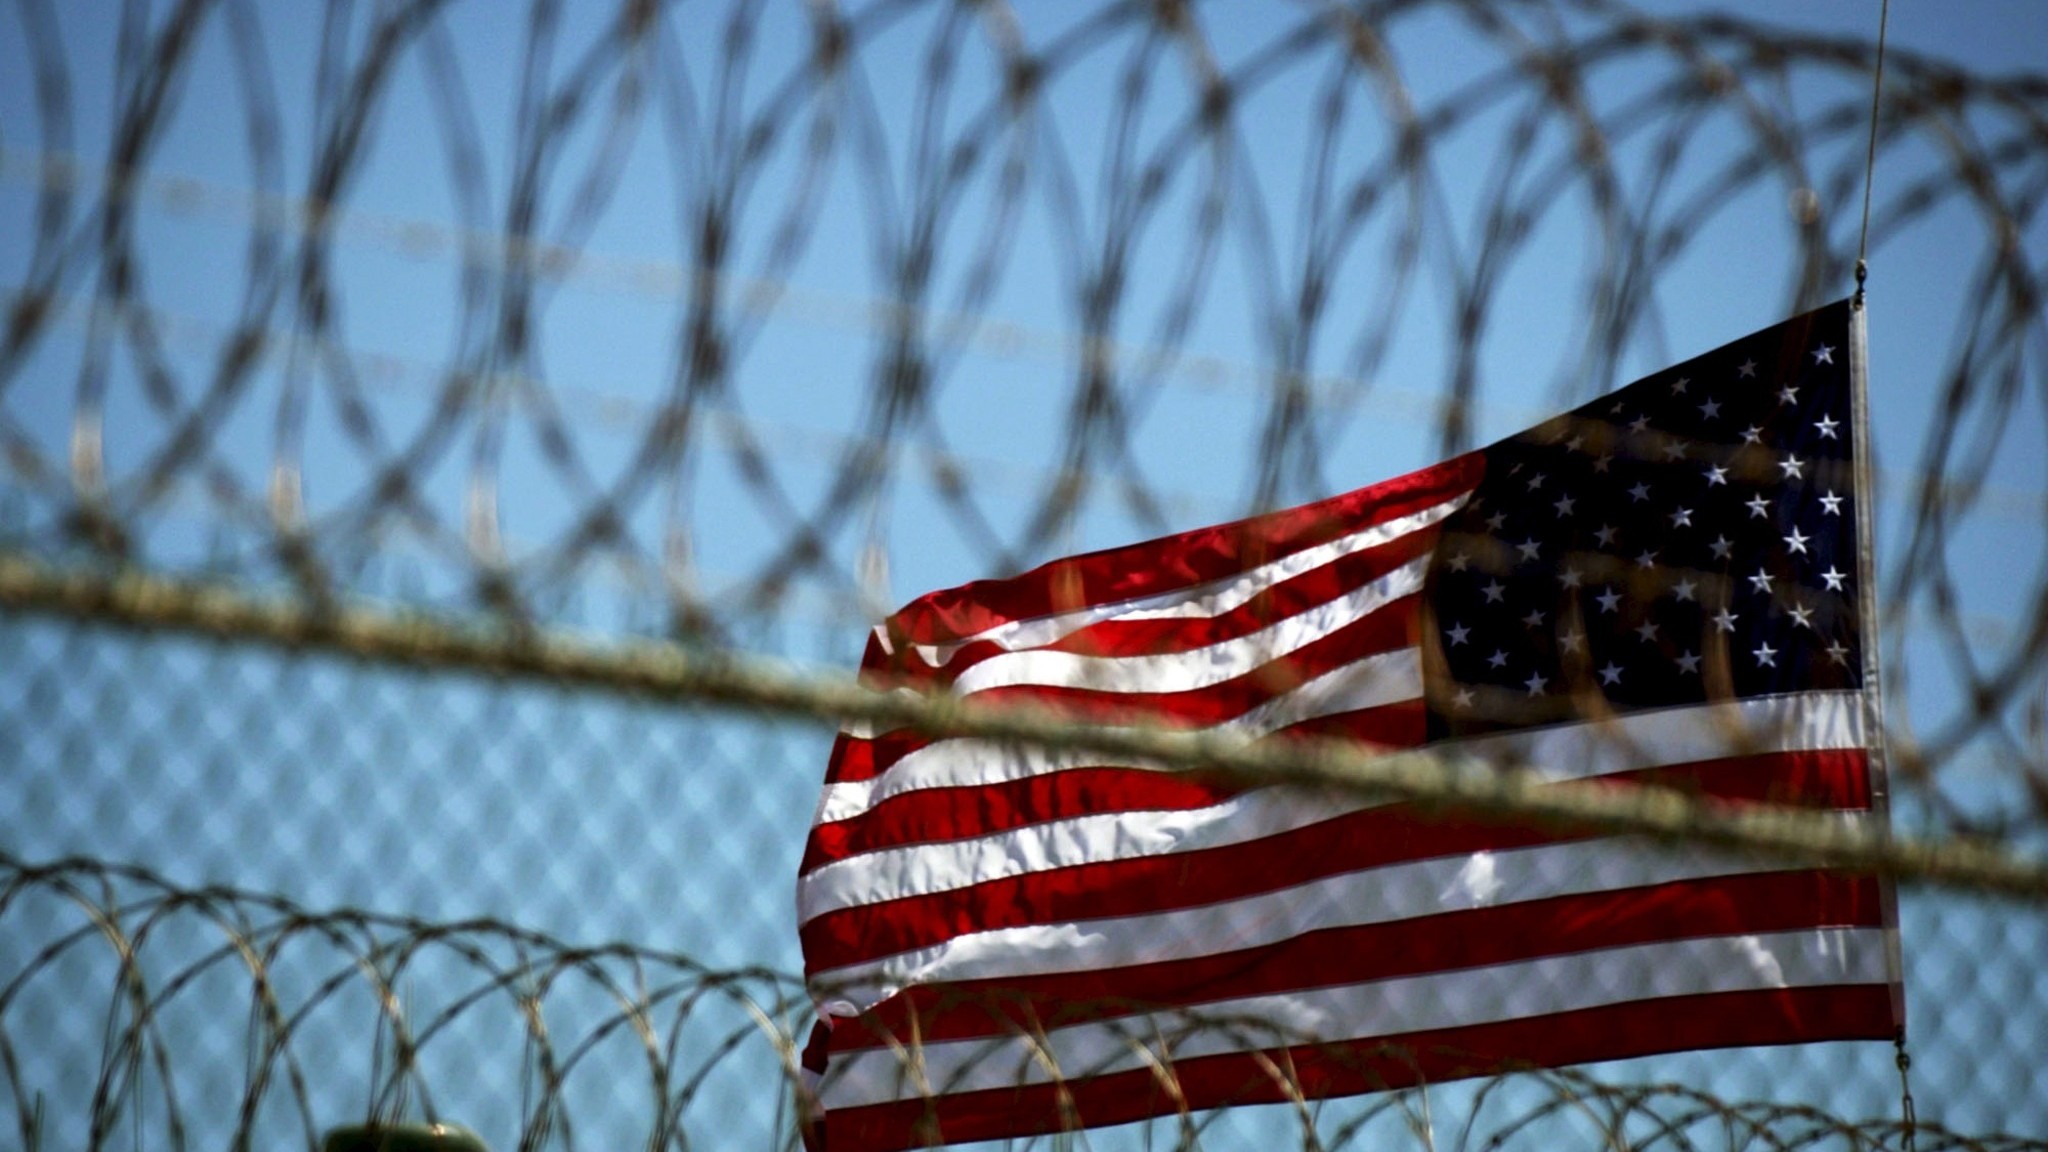 Congress is trying to block the release of 20 Gitmo inmates by refusing to pay for it